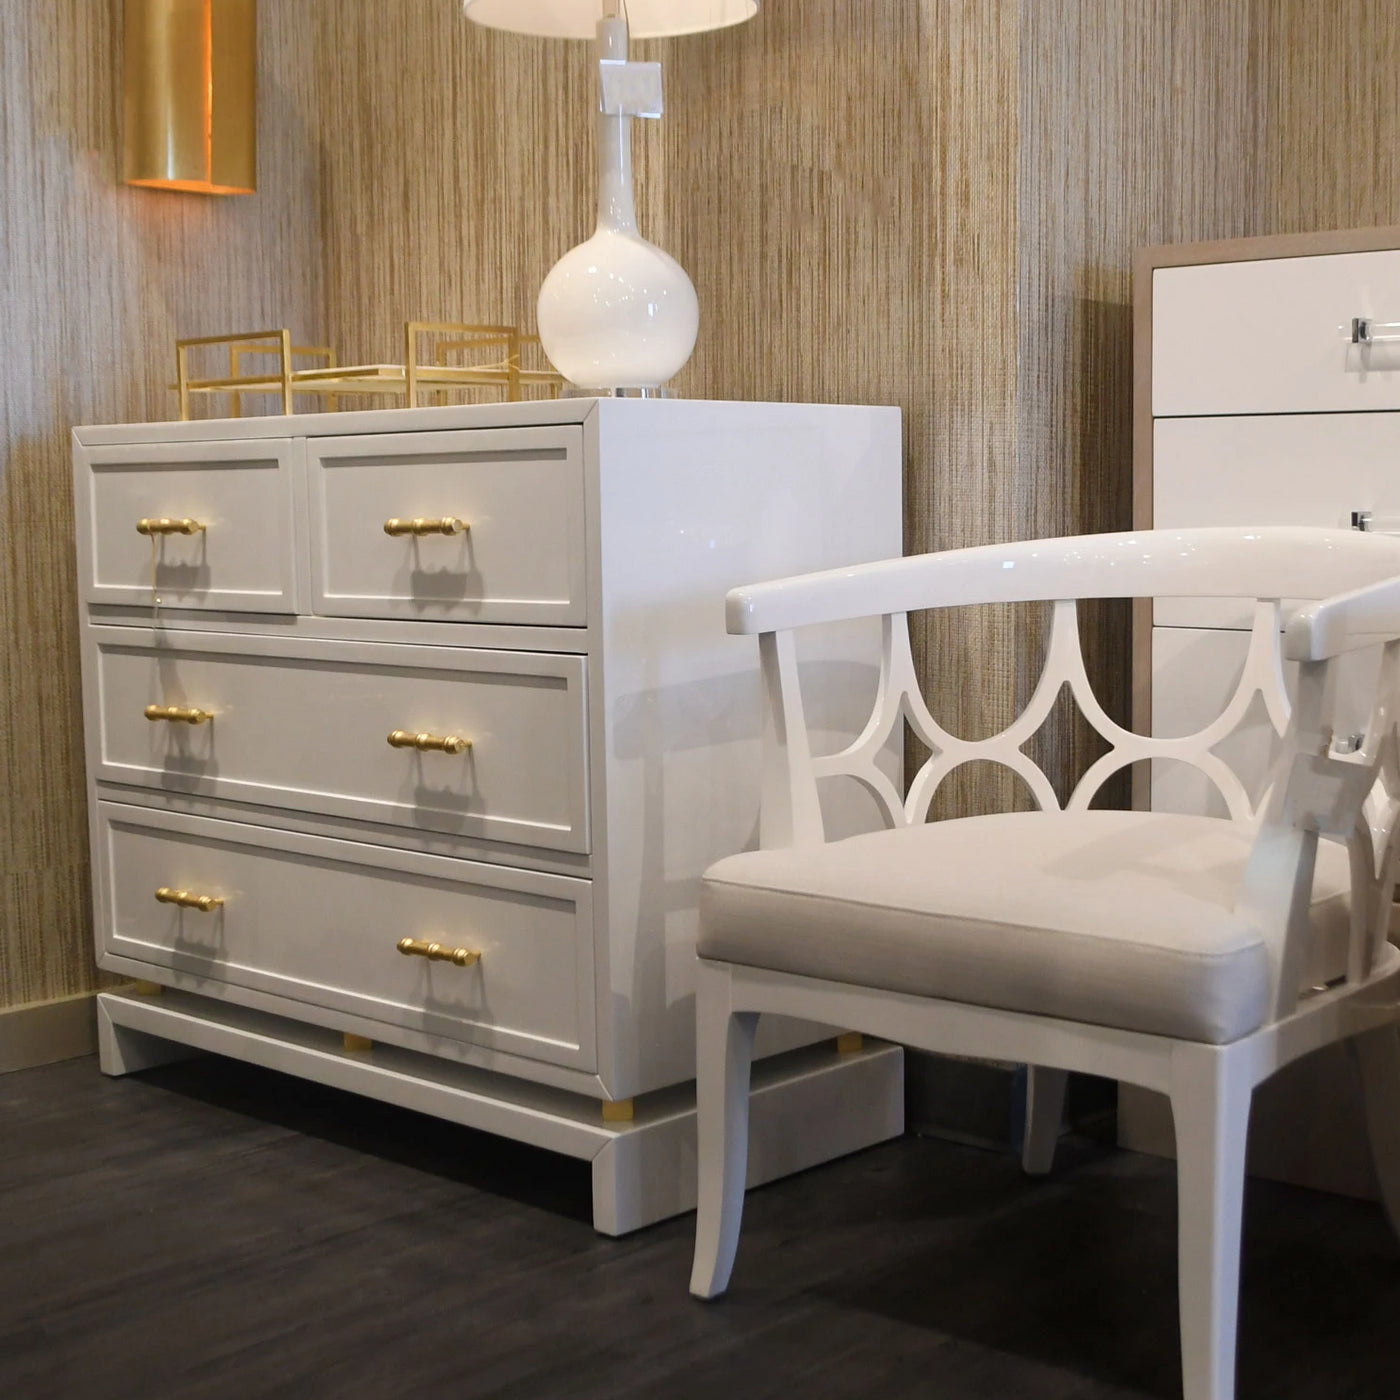 worlds away Declan chest white drawers